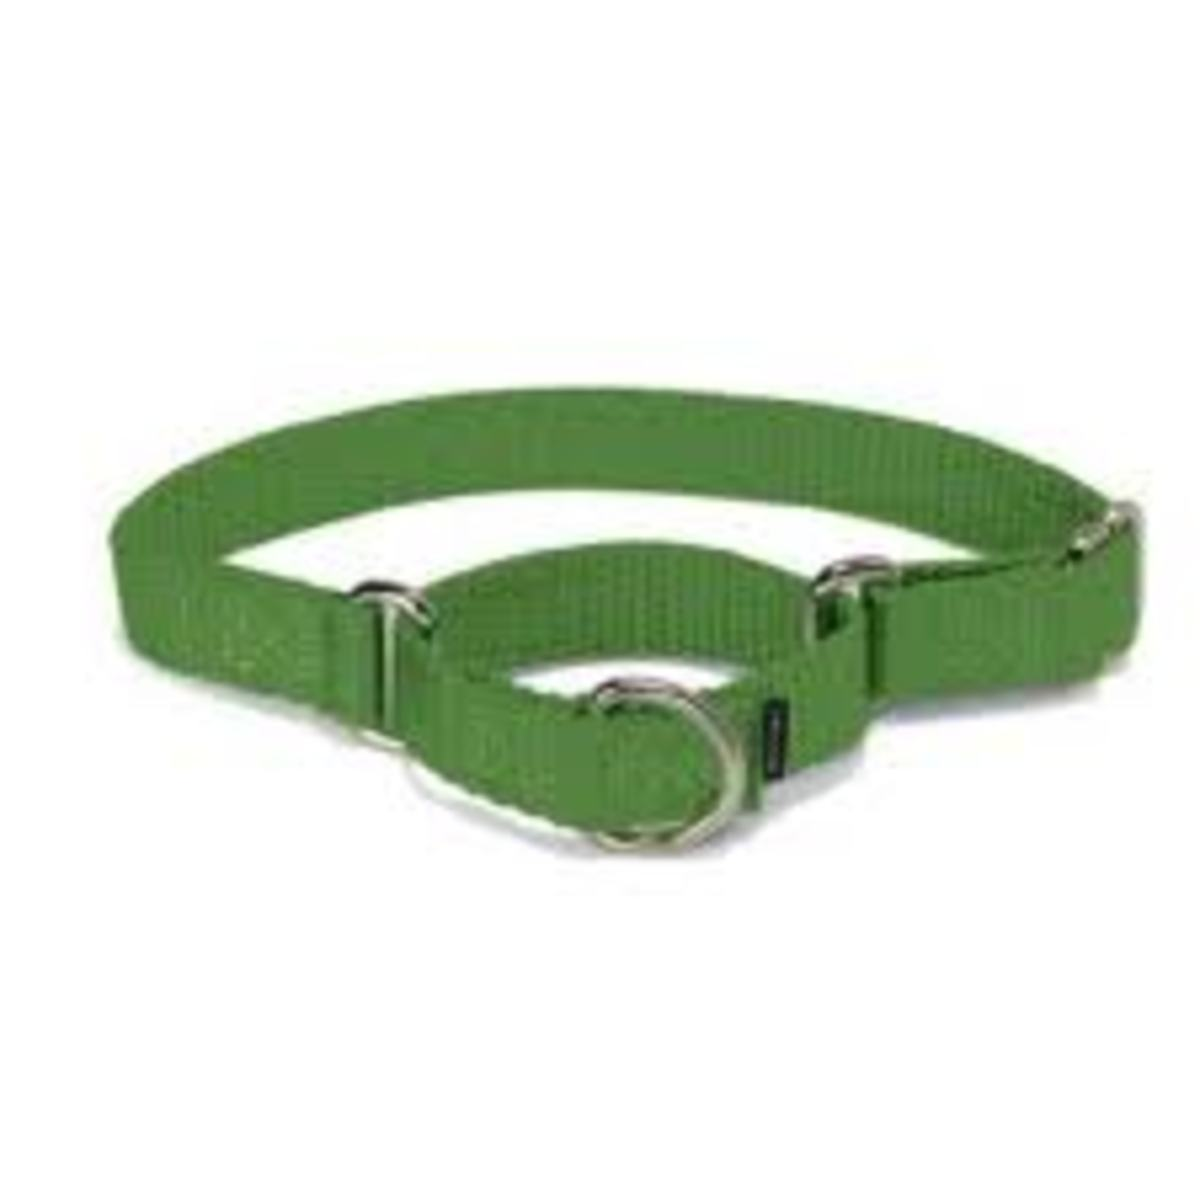 Martingale collars, popular at first with sight hounds, now crossing the board for use in all sorts of breeds. Trainers find them to be a softer way of correction compared to choke collars.